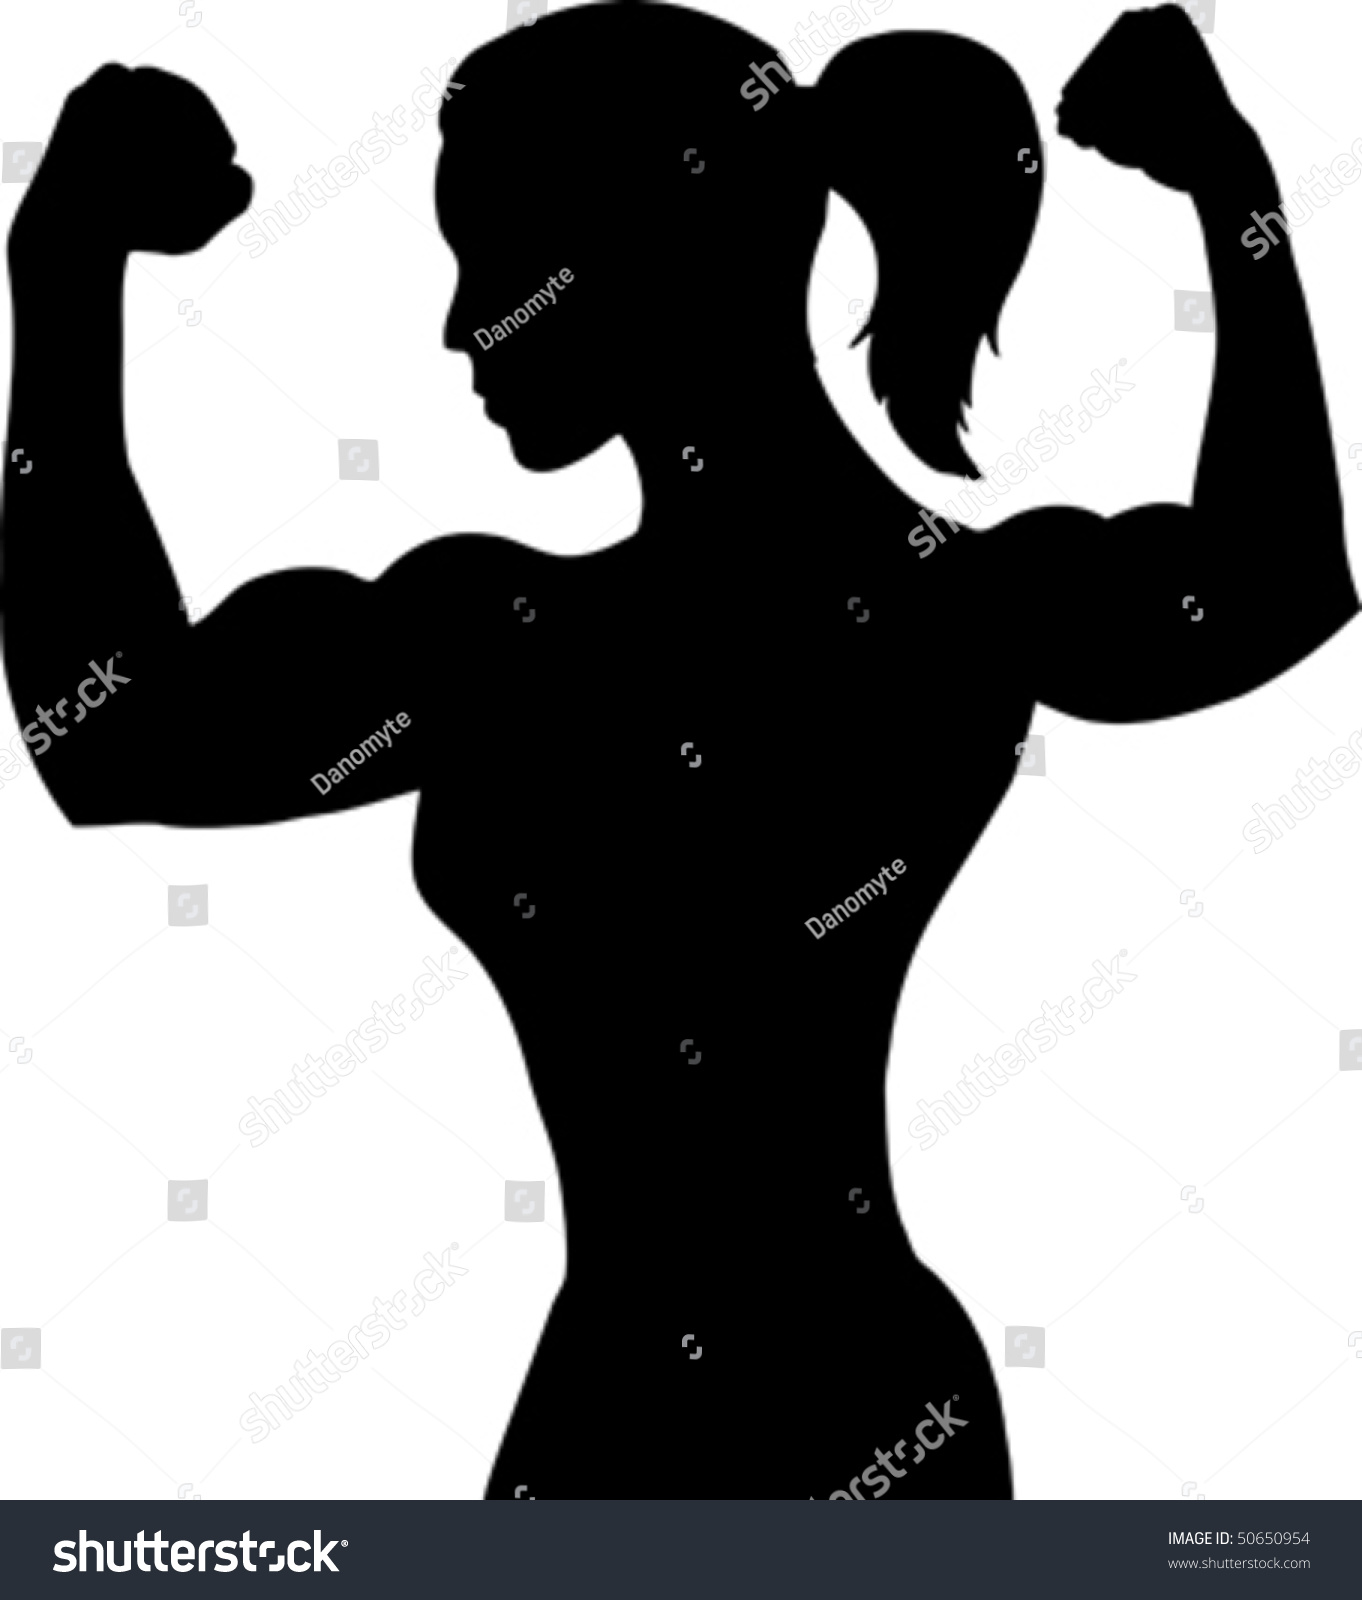 ponytail clipart